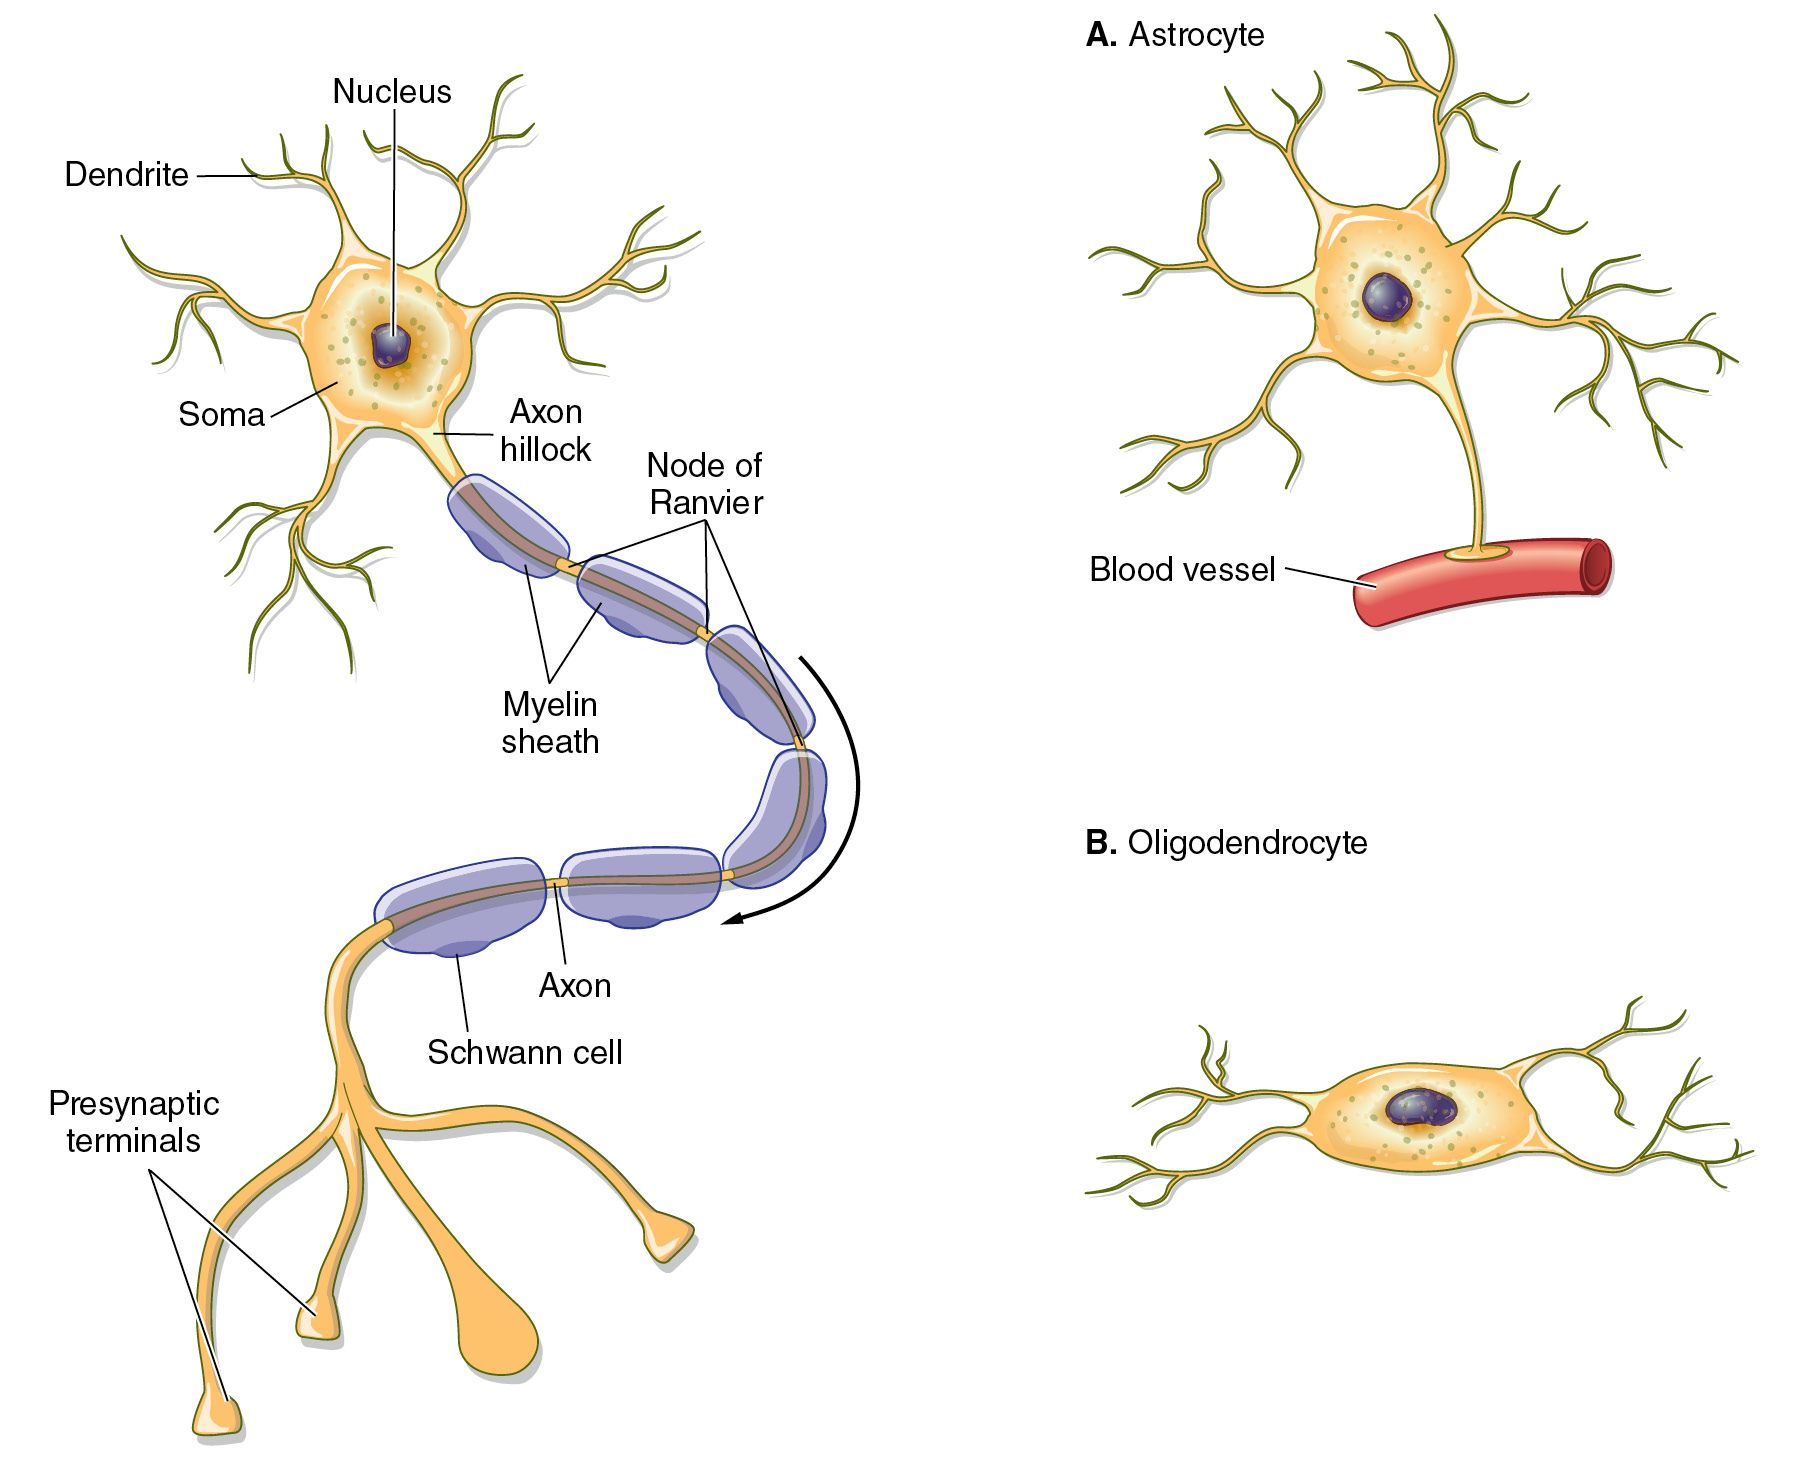 Illustrations Of A Typical Neuron And The Glial Cells